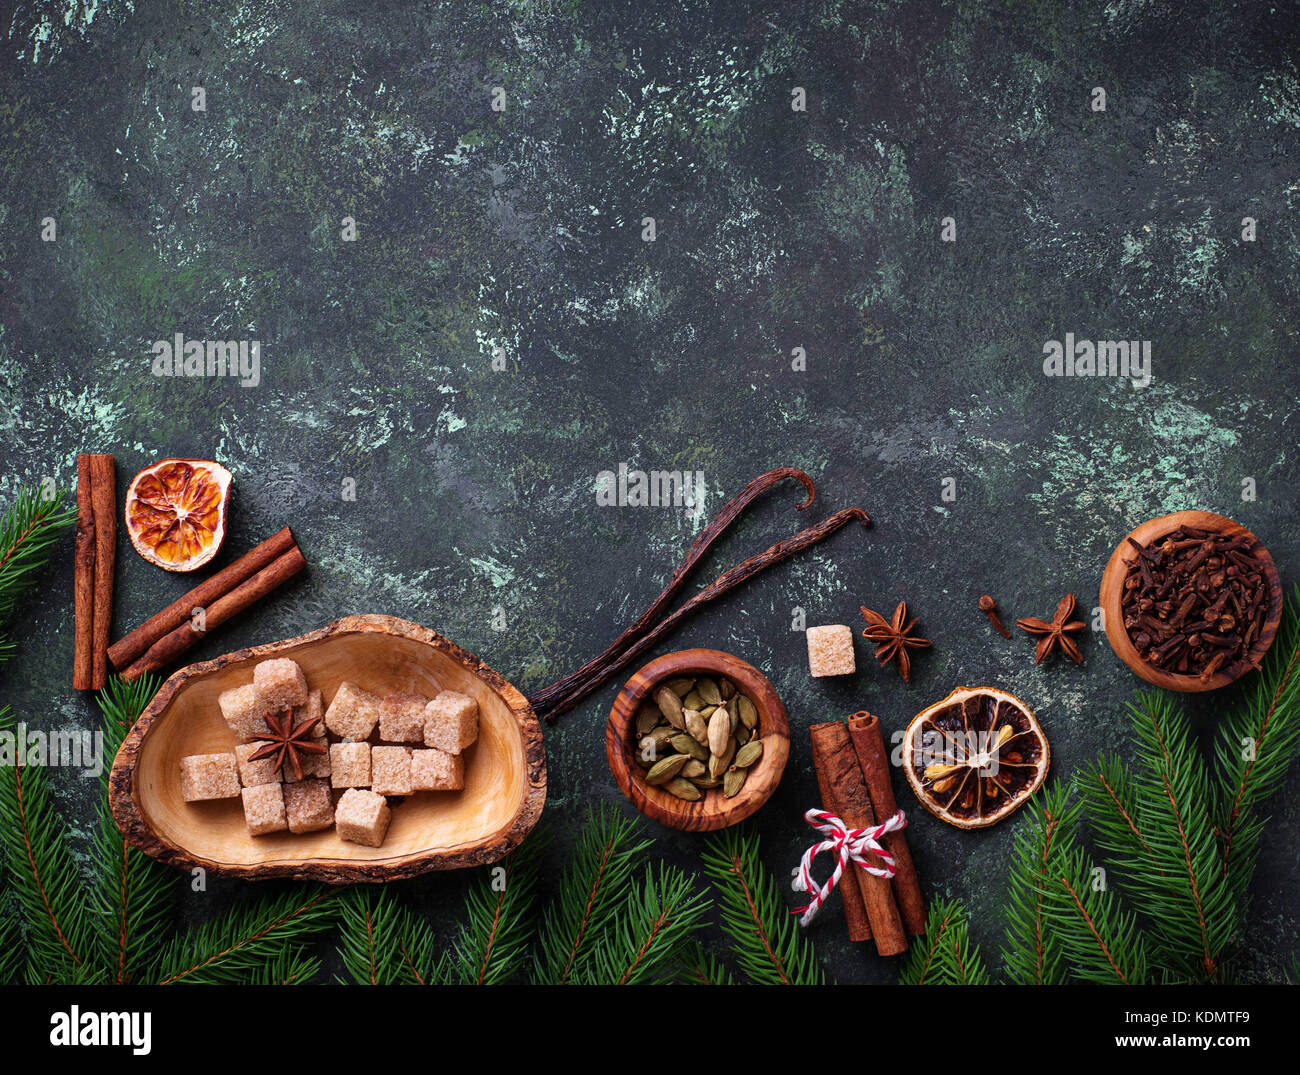 aromatic stockfotos aromatic bilder alamy. Black Bedroom Furniture Sets. Home Design Ideas